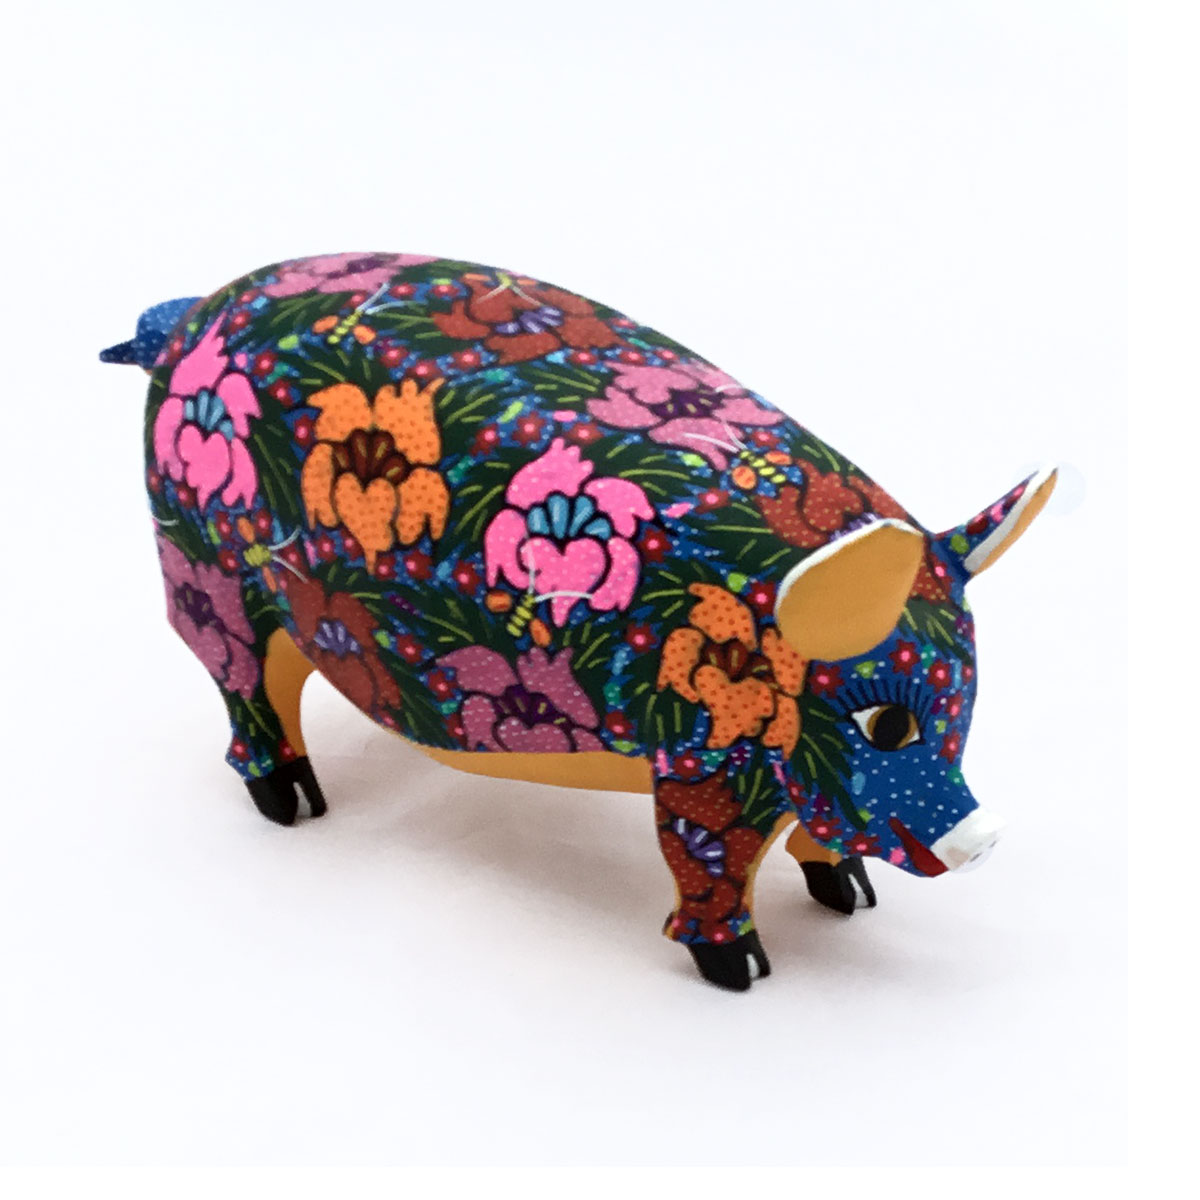 Candido Jimenez Ojeda Candido Jimenez Ojeda: Pig with Flowers Pig